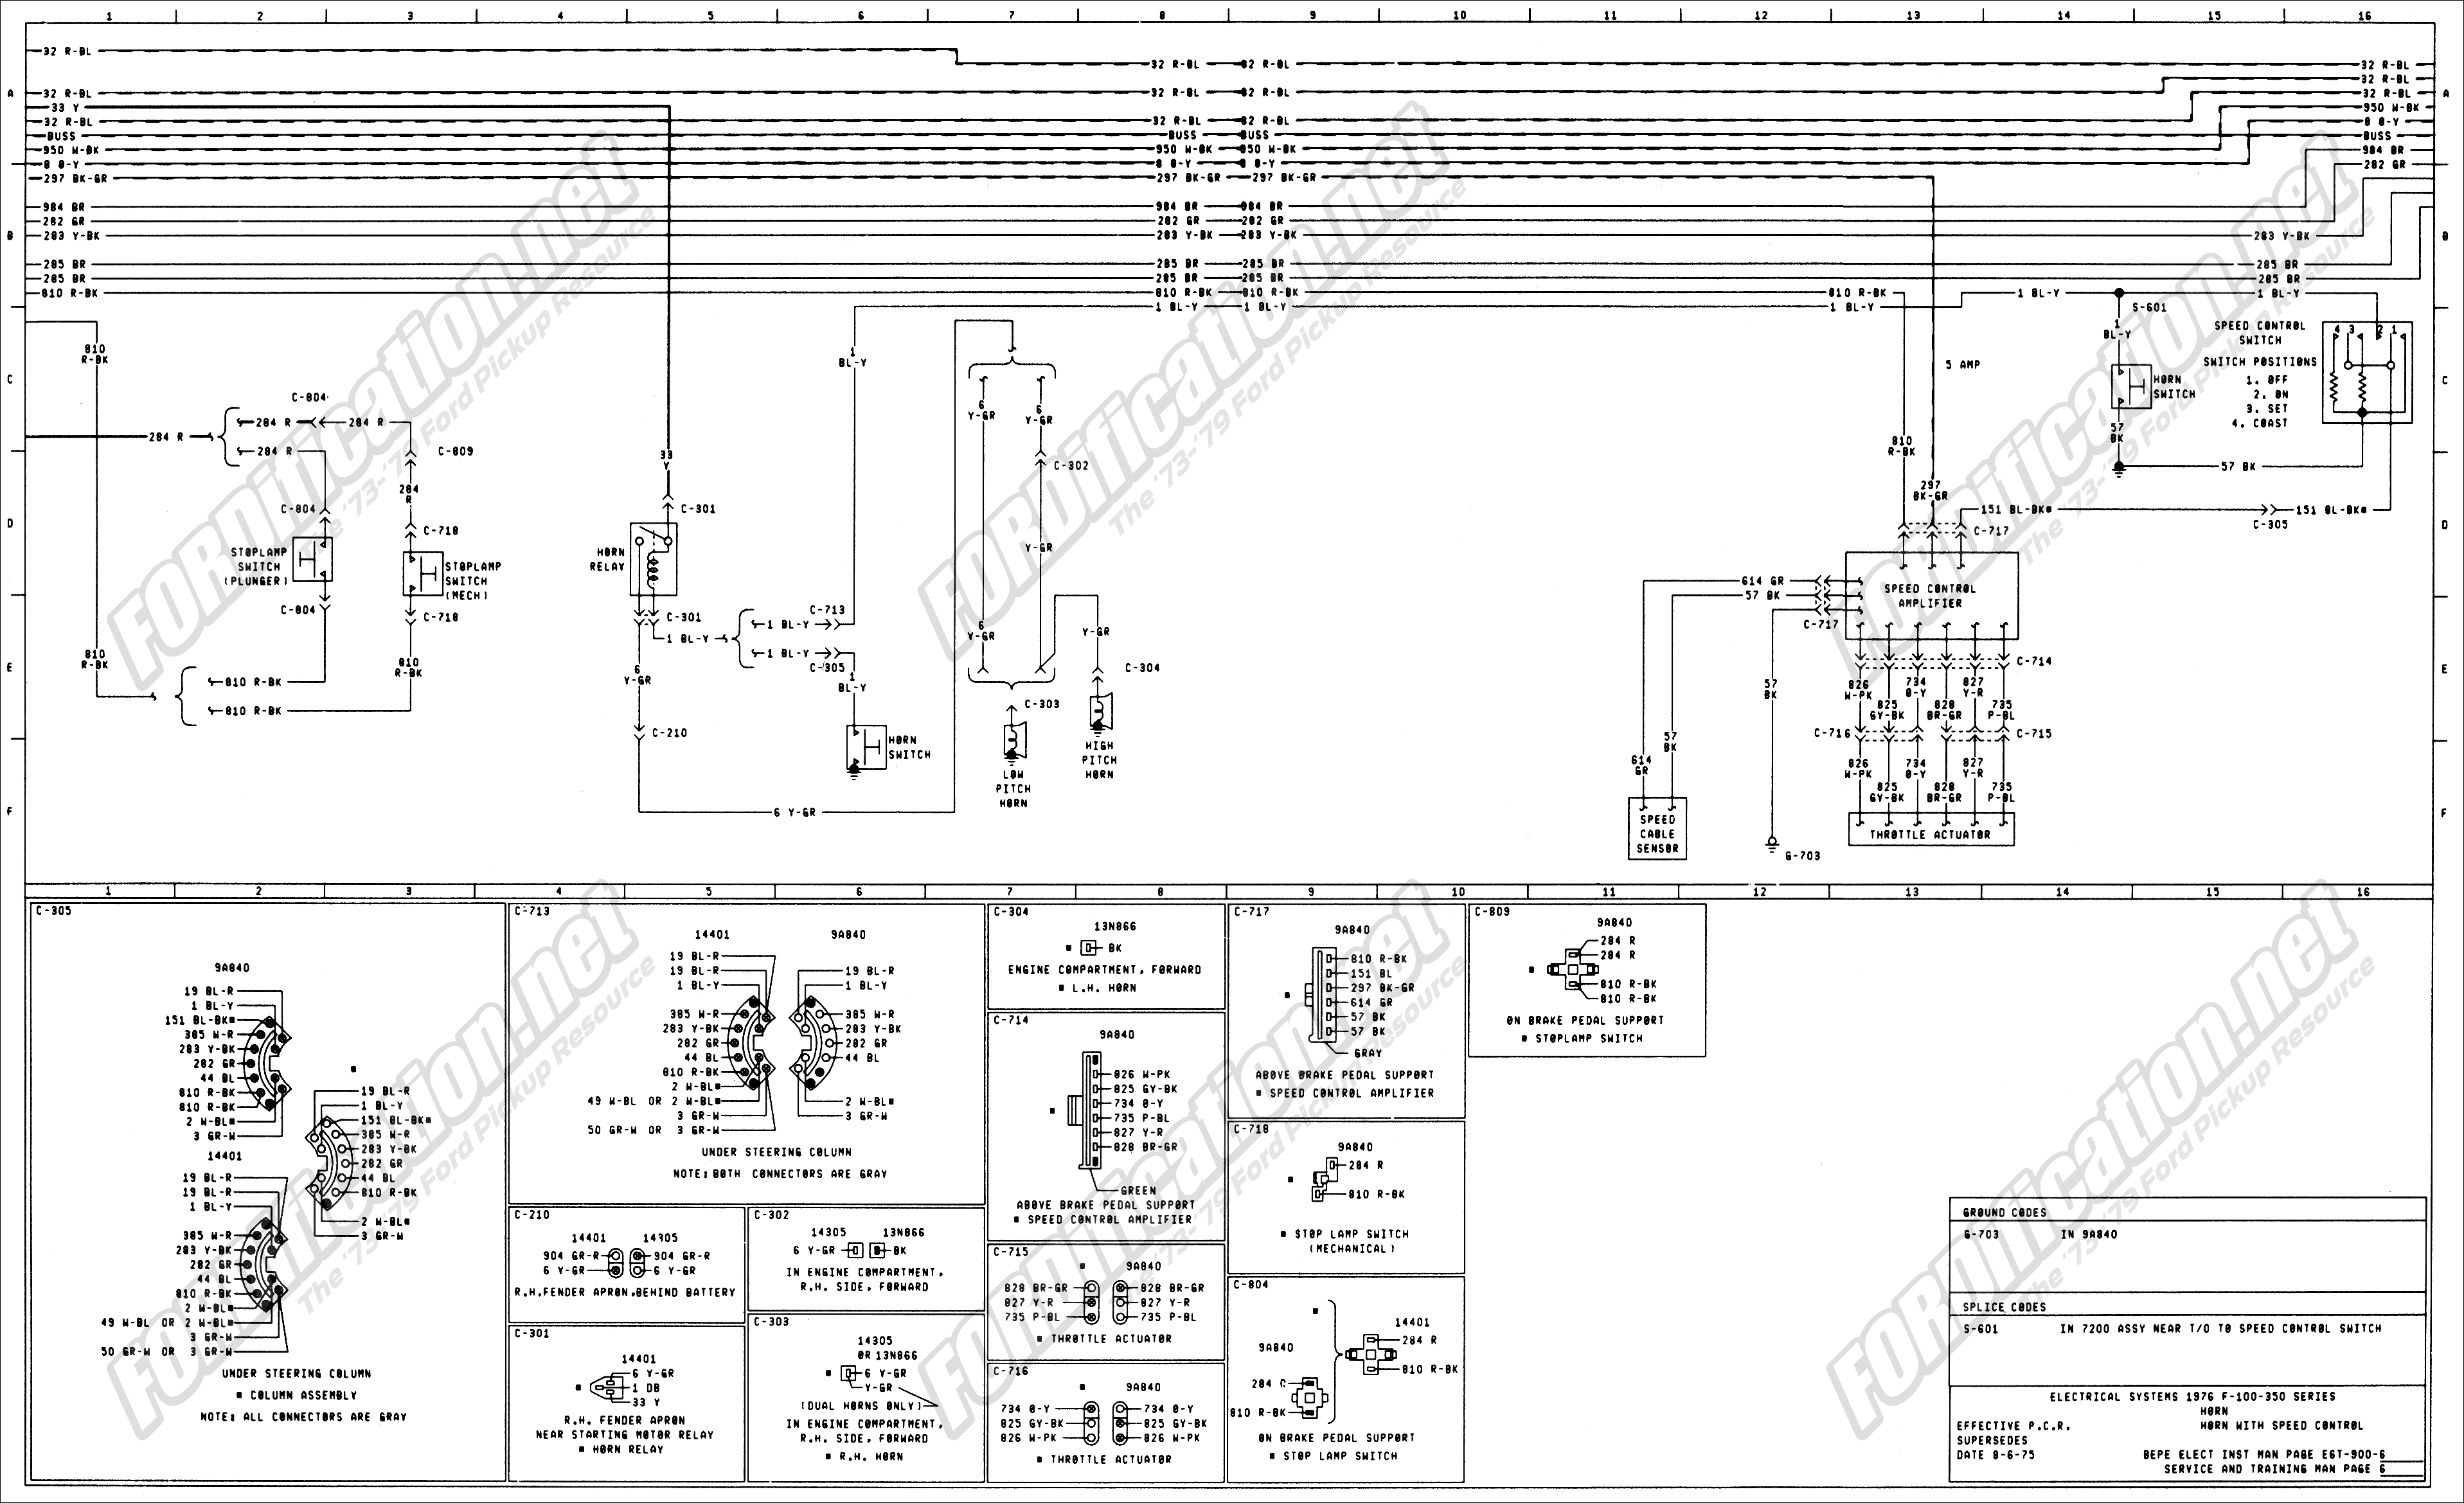 78 Chevy Fuse Box Location Wiring Library Jeep 1978 Turn Signal Diagram Detailed Schematics Rh Antonartgallery Com